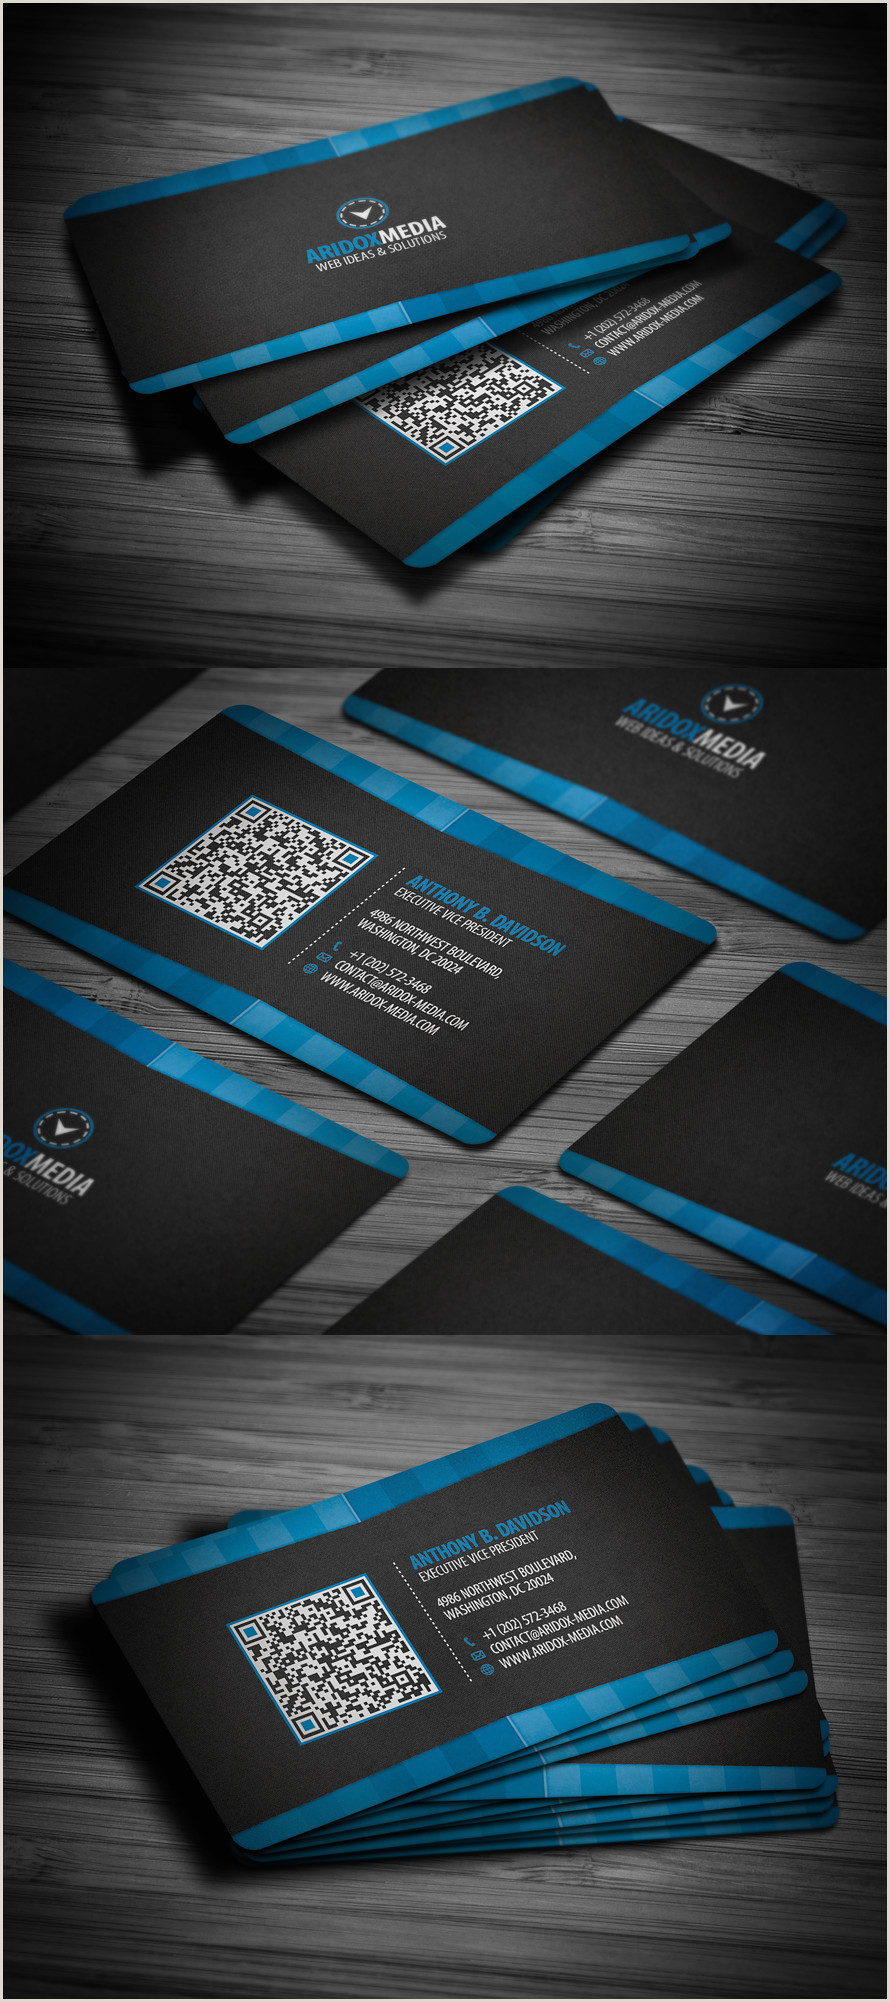 How To Design A Good Business Card Professional Corporate Business Card By Flowpixel On